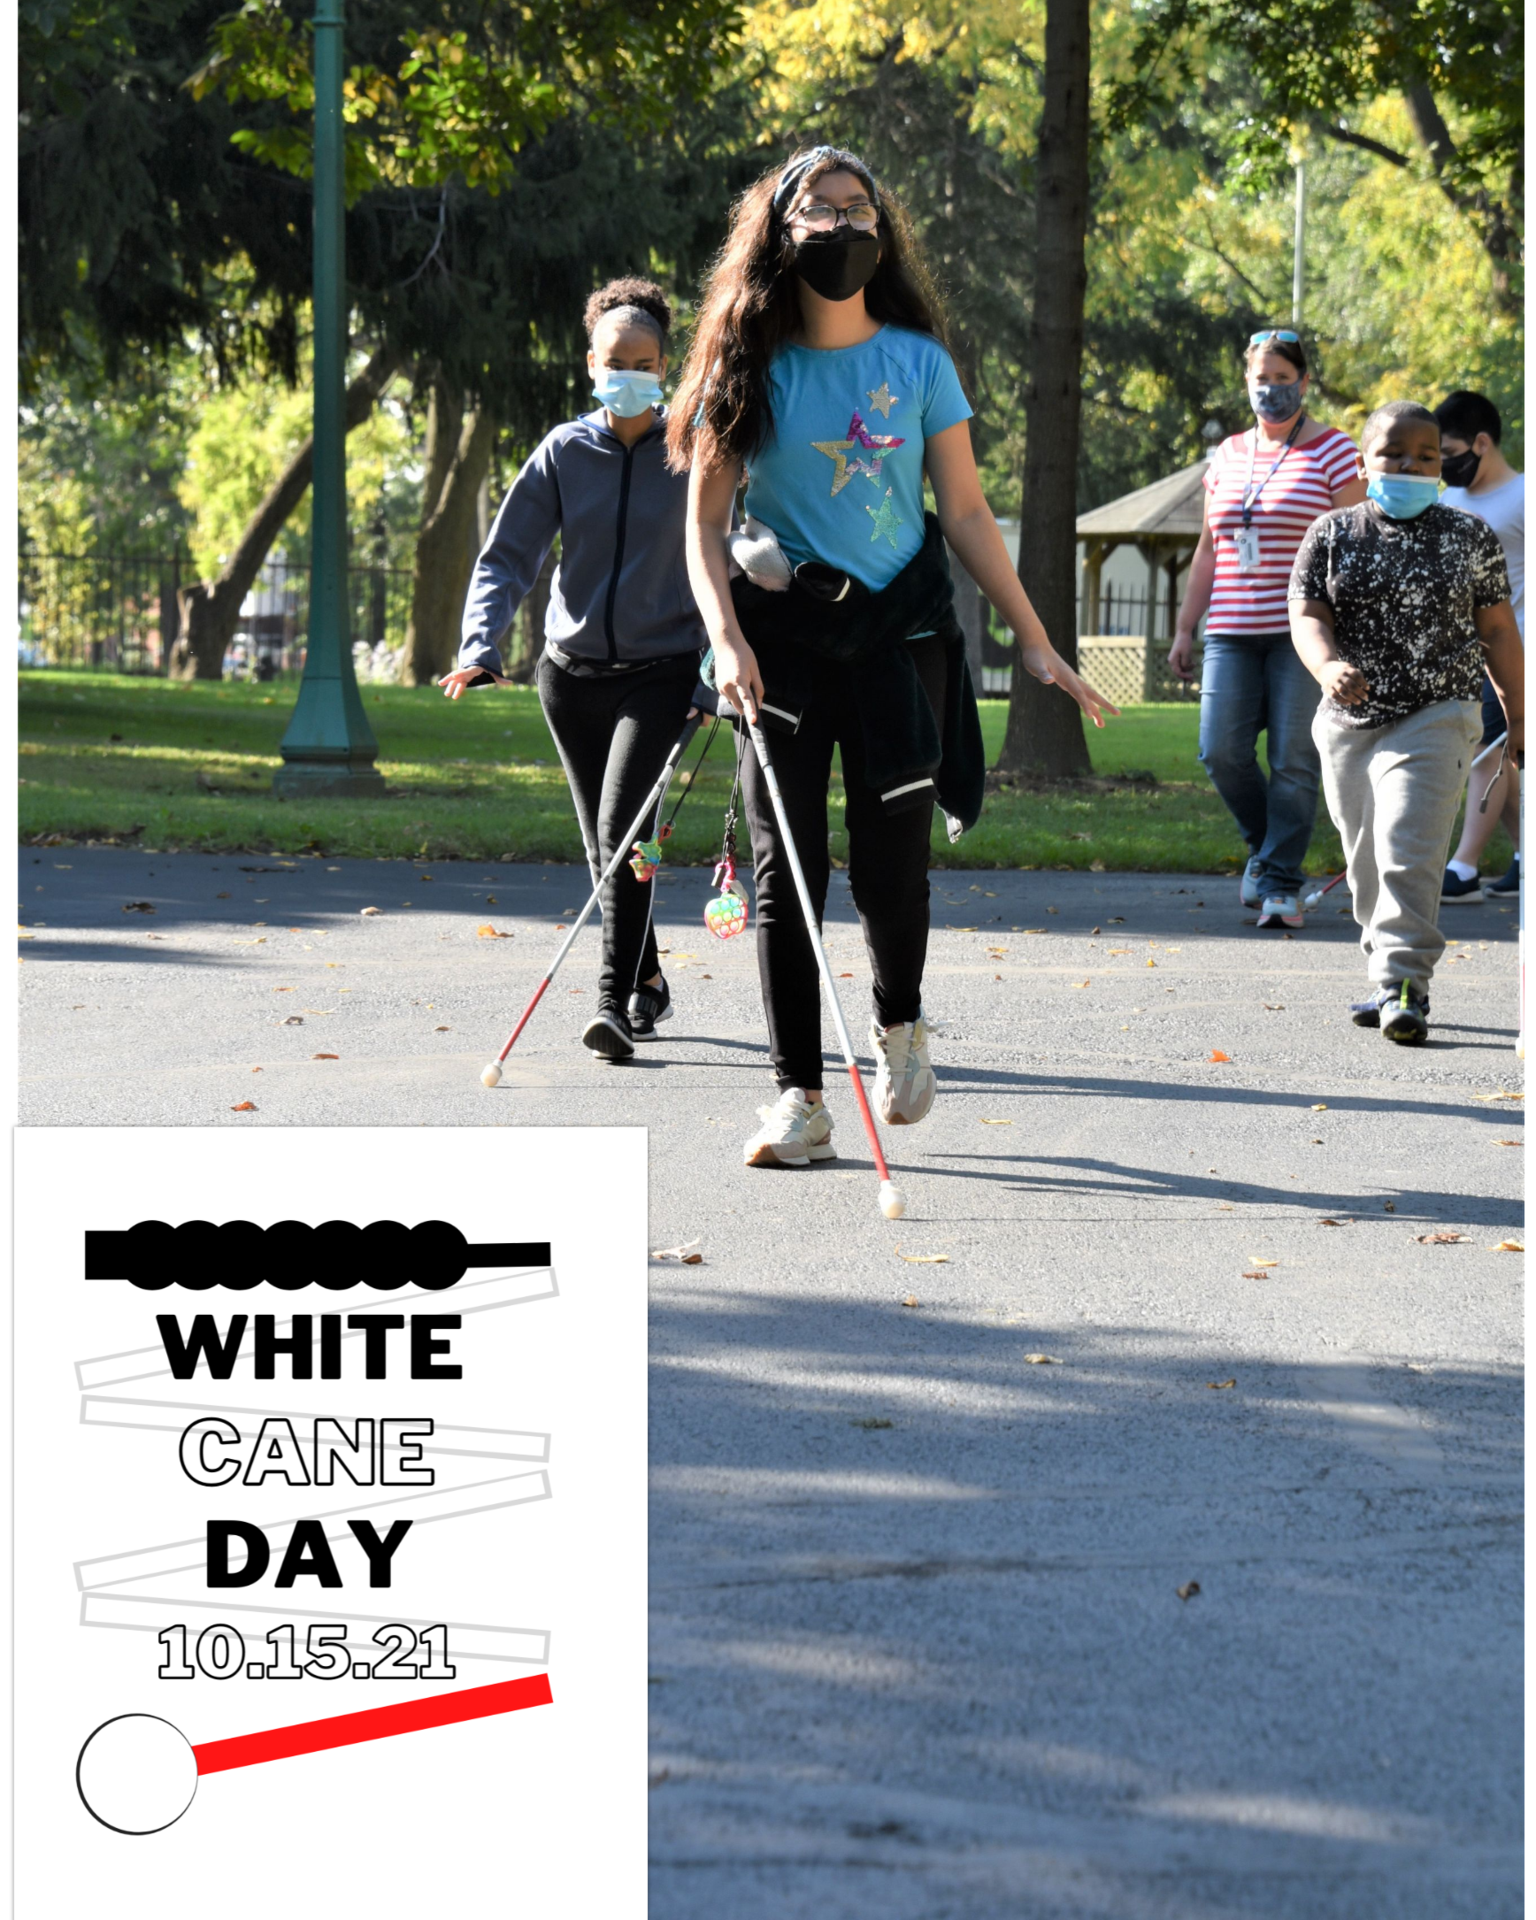 Students are walking down the path with their White Canes